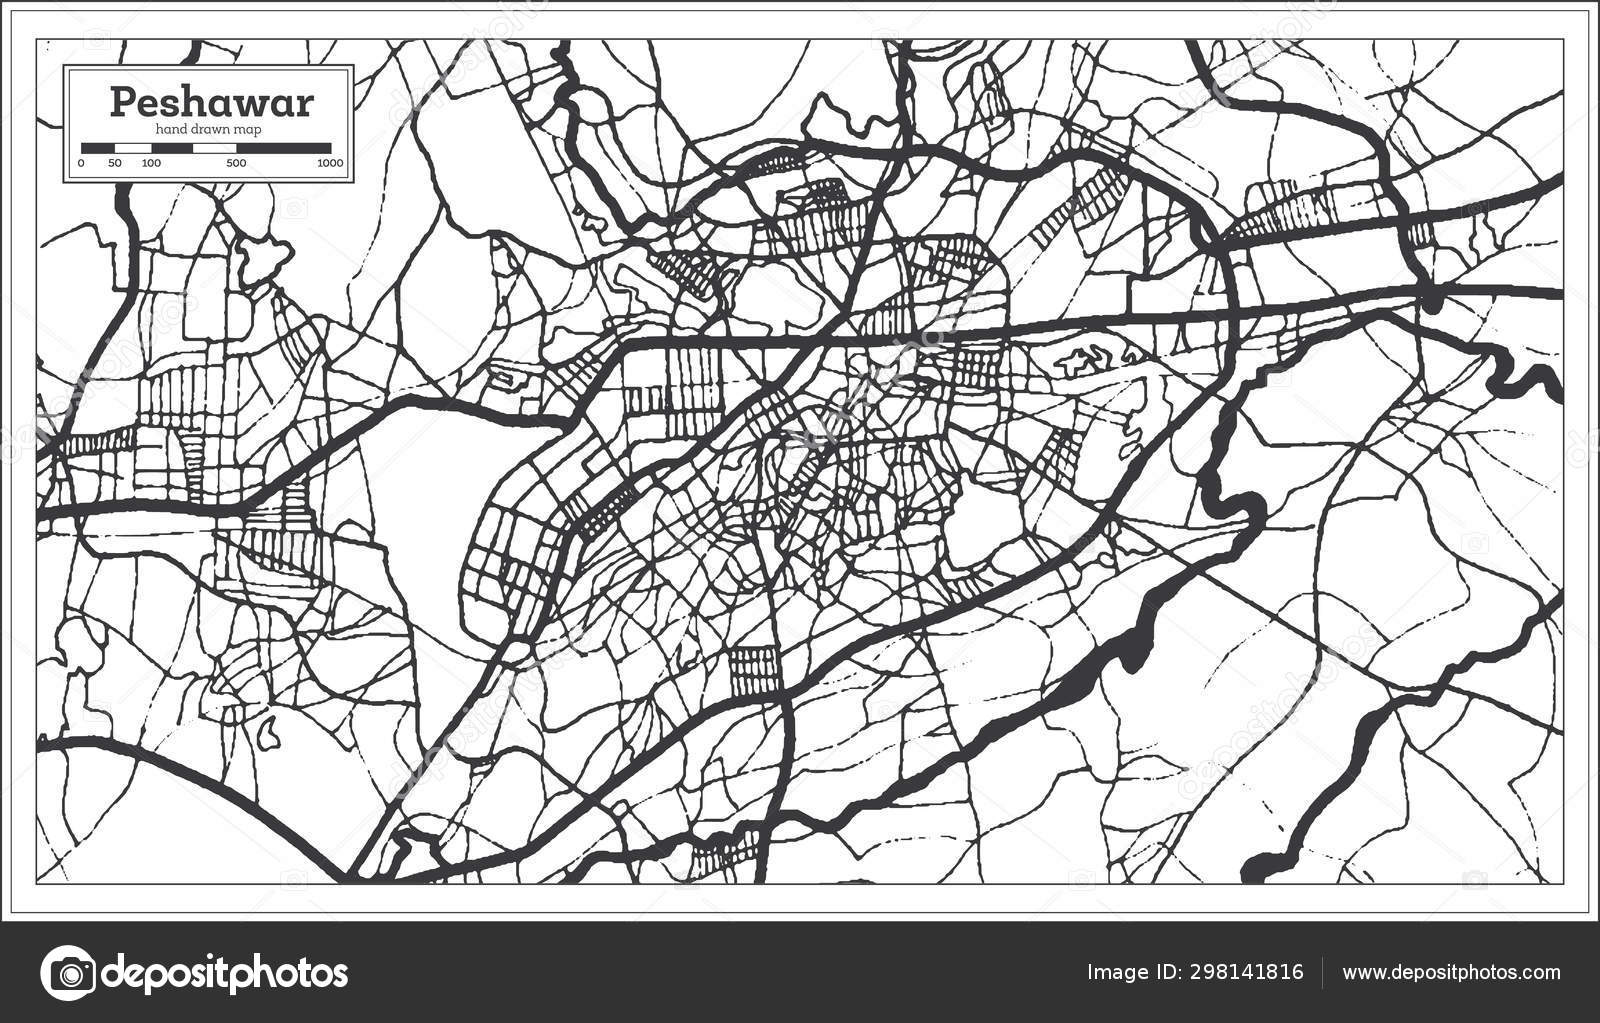 Peshawar Pakistan City Map in Retro Style in Black and White